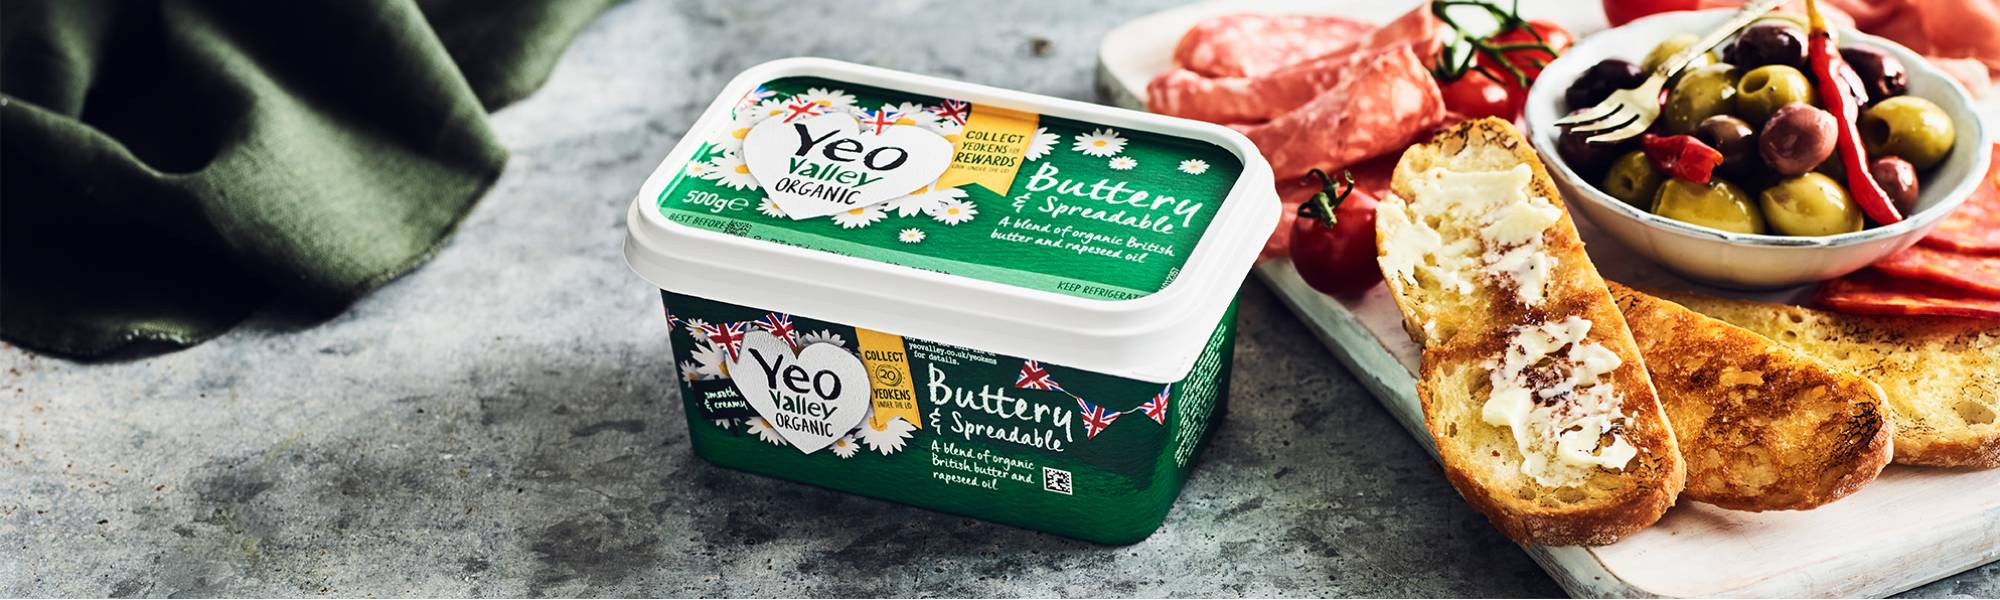 Yeo Valley Organic Spreadable Butter